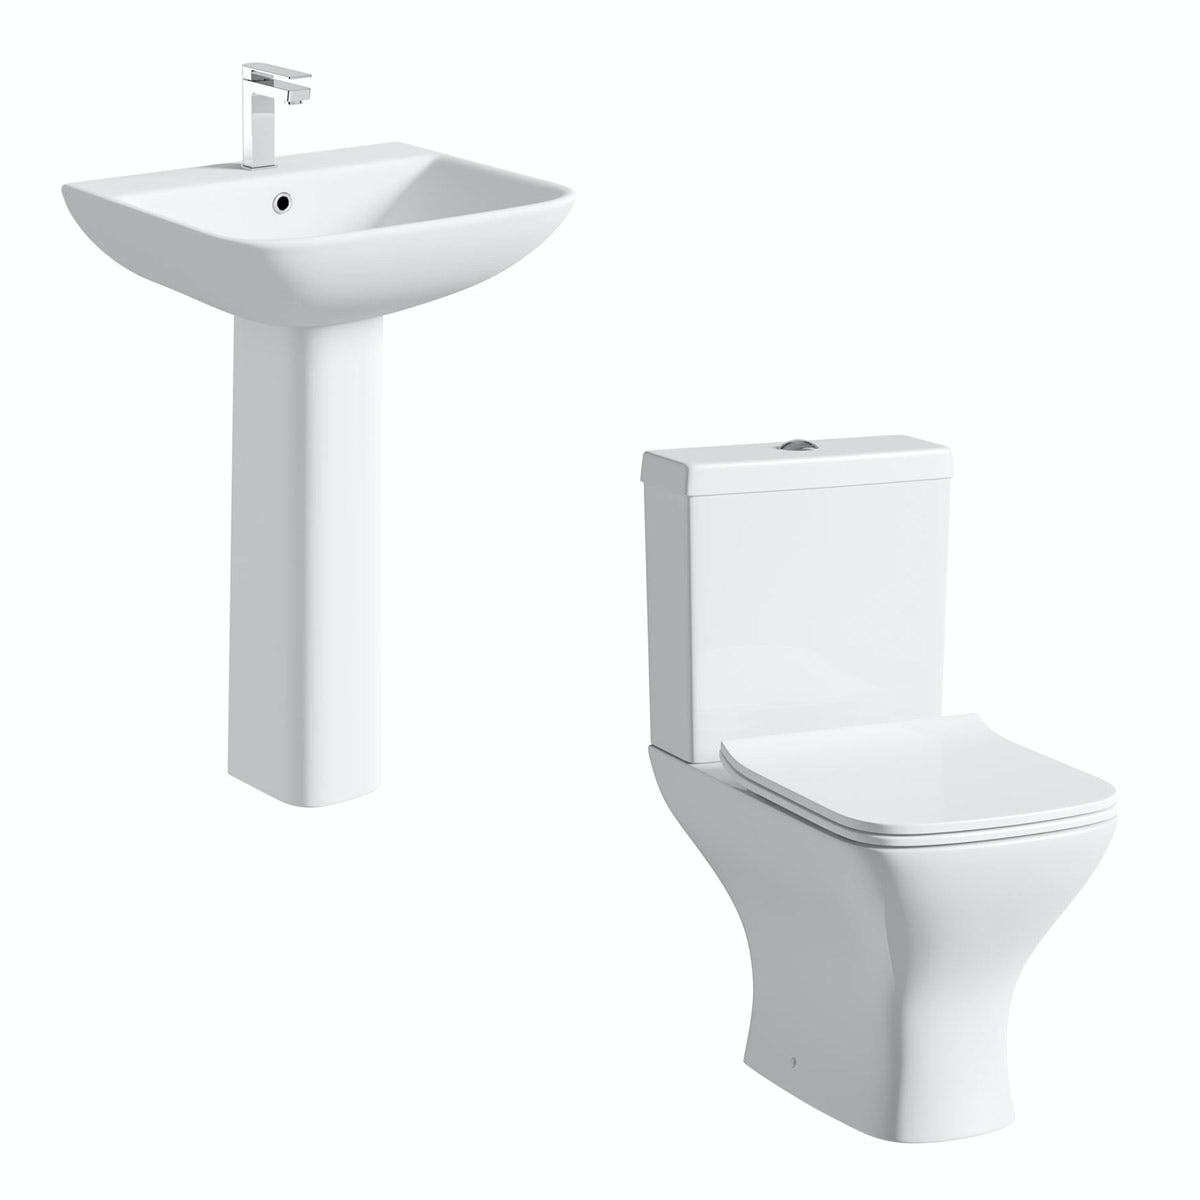 Orchard Derwent square compact cloakroom suite with full pedestal basin suite 550mm